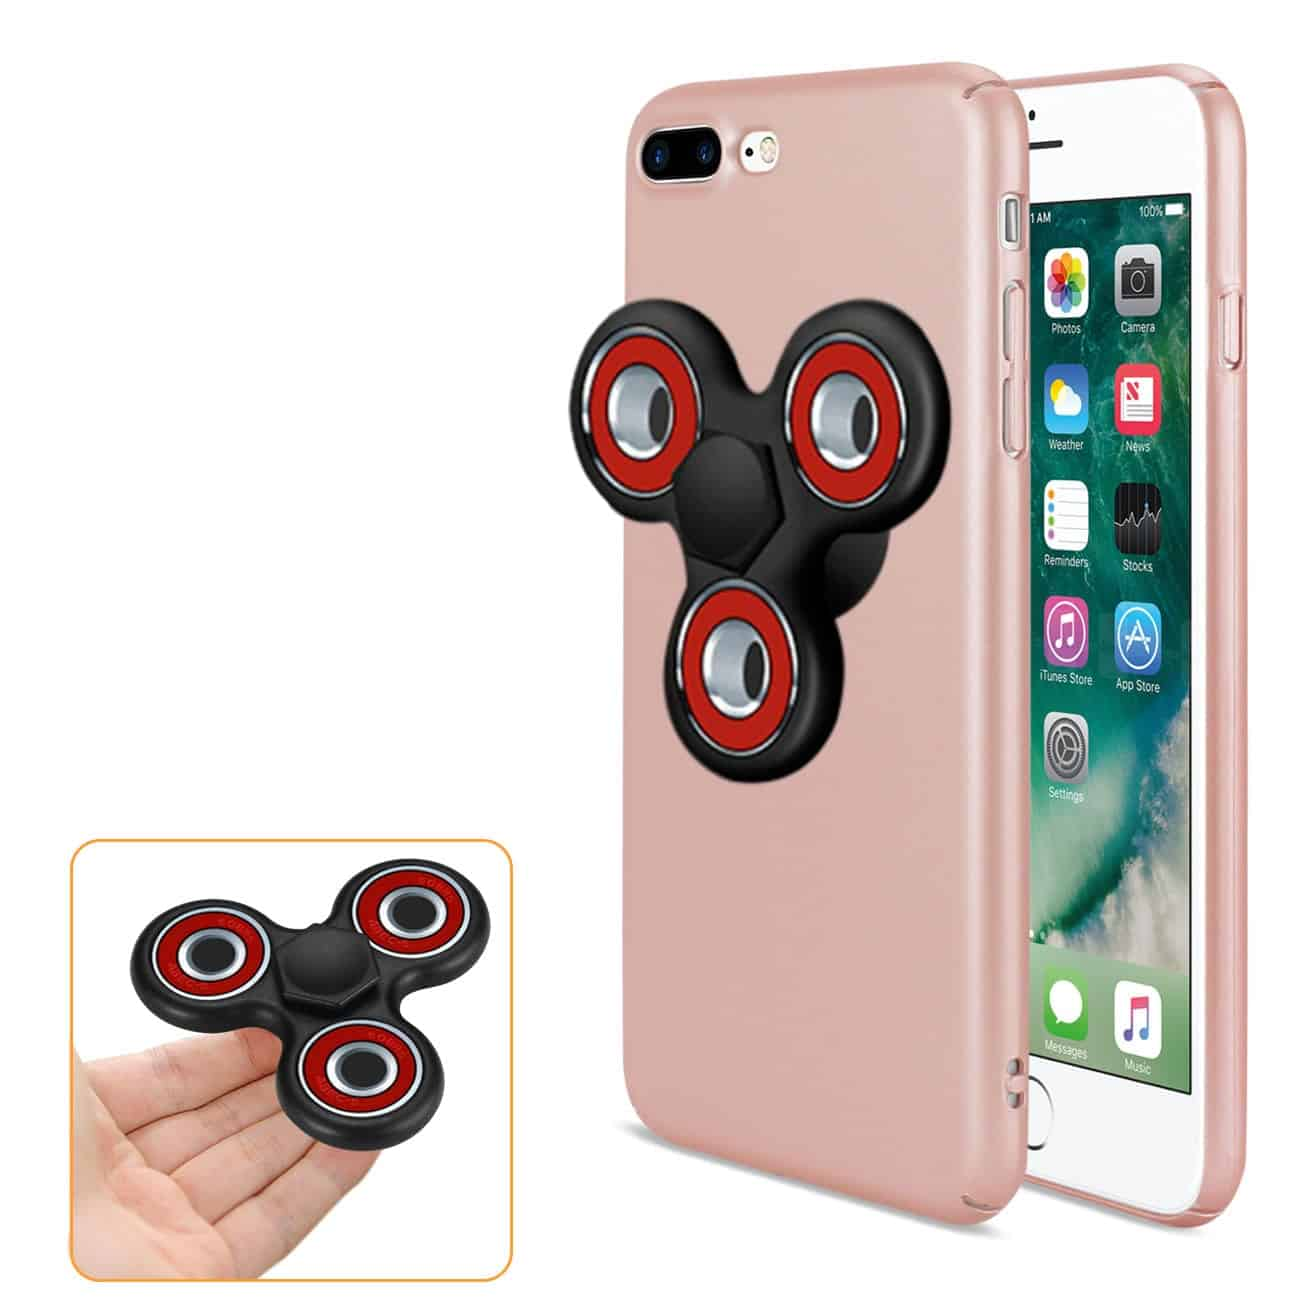 IPHONE 7 PLUS/ 6 PLUS/ 6S PLUS CASE WITH LED FIDGET SPINNER CLIP ON IN ROSE GOLD